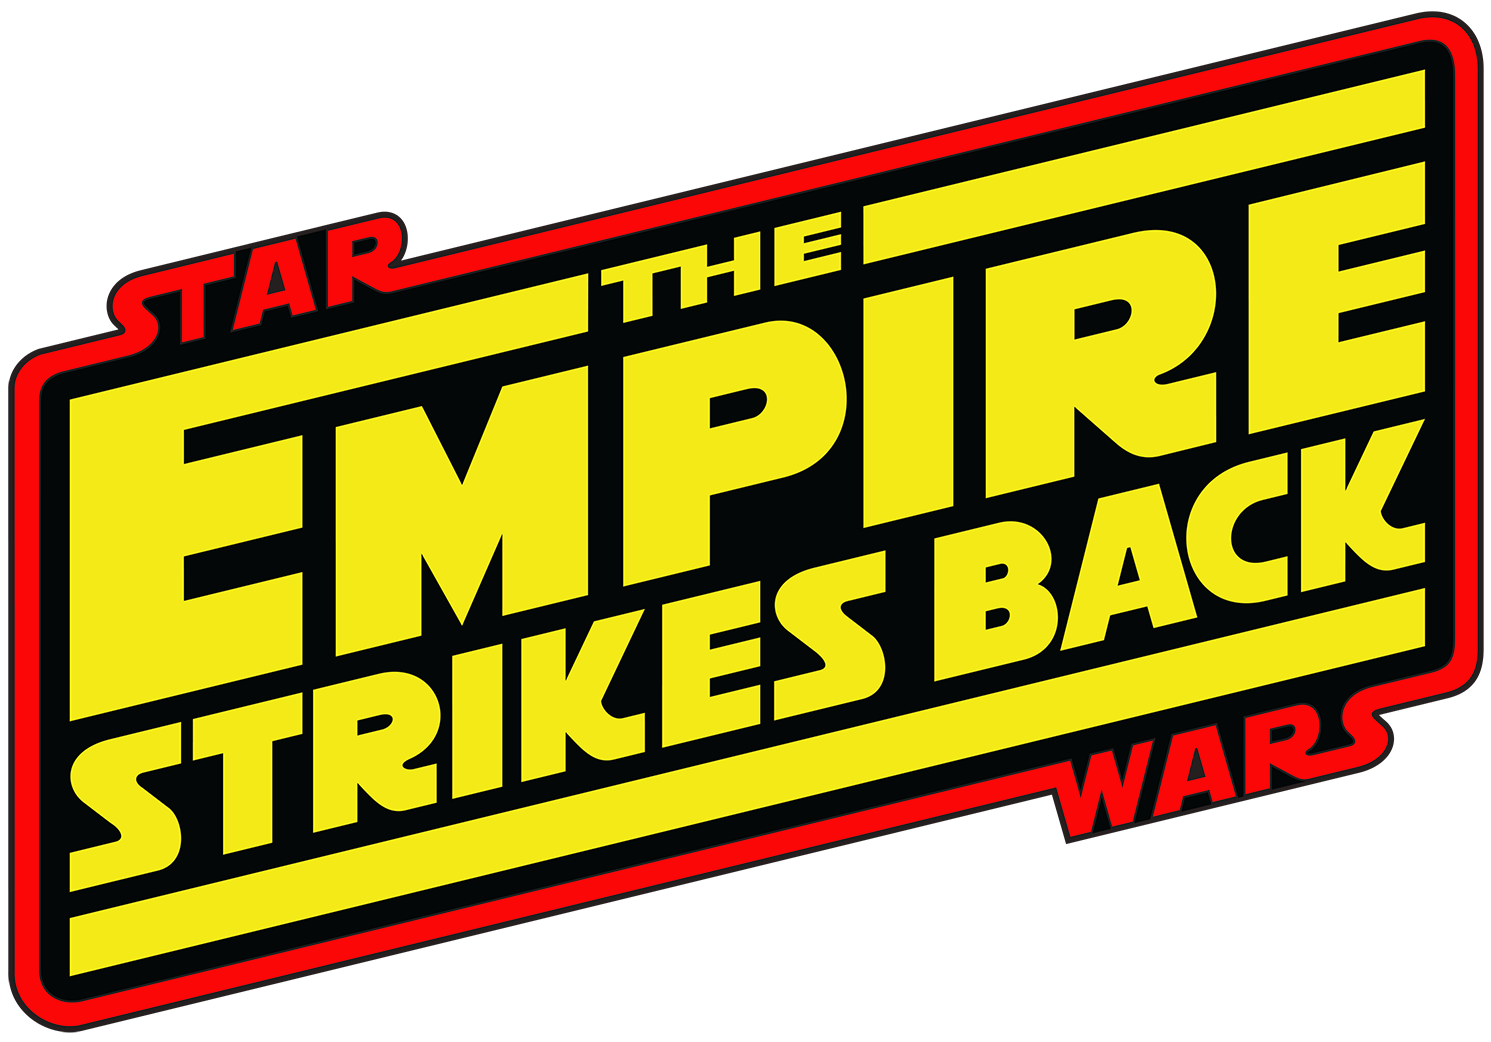 Pin By Baro Newman On Z September 2015 Empire Strike Star Wars Awesome The Empire Strikes Back